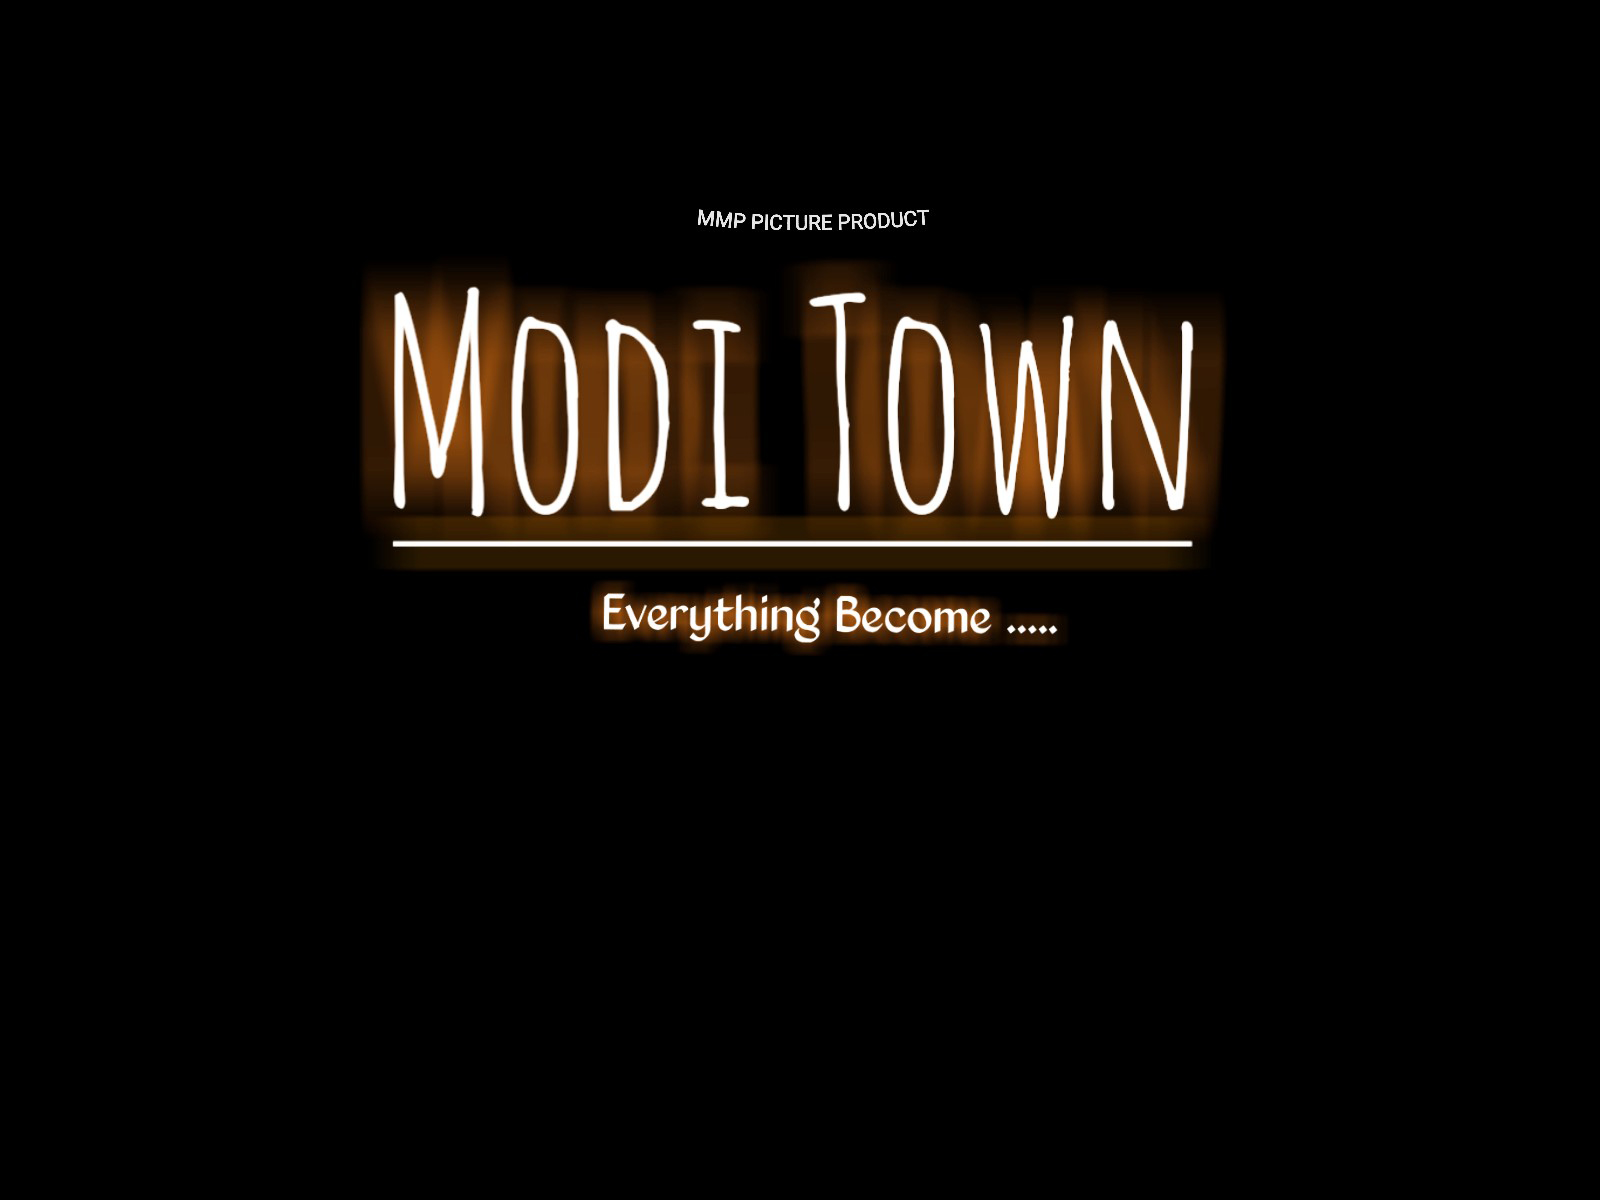 Modi town text png download modi town text with neon light.